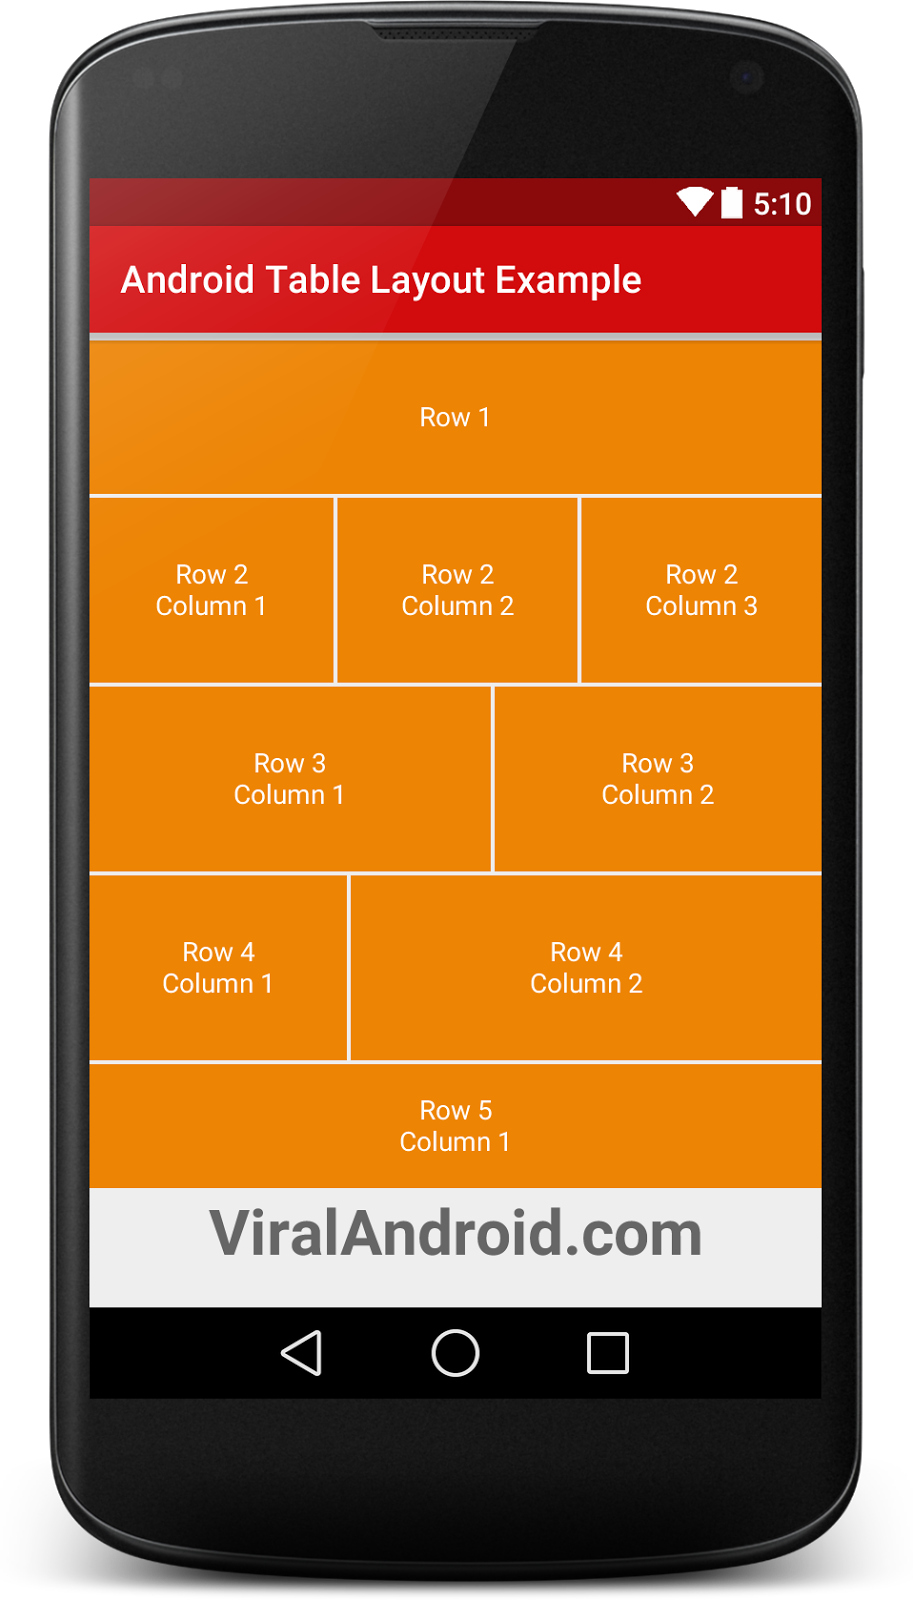 Android Table Layout Example